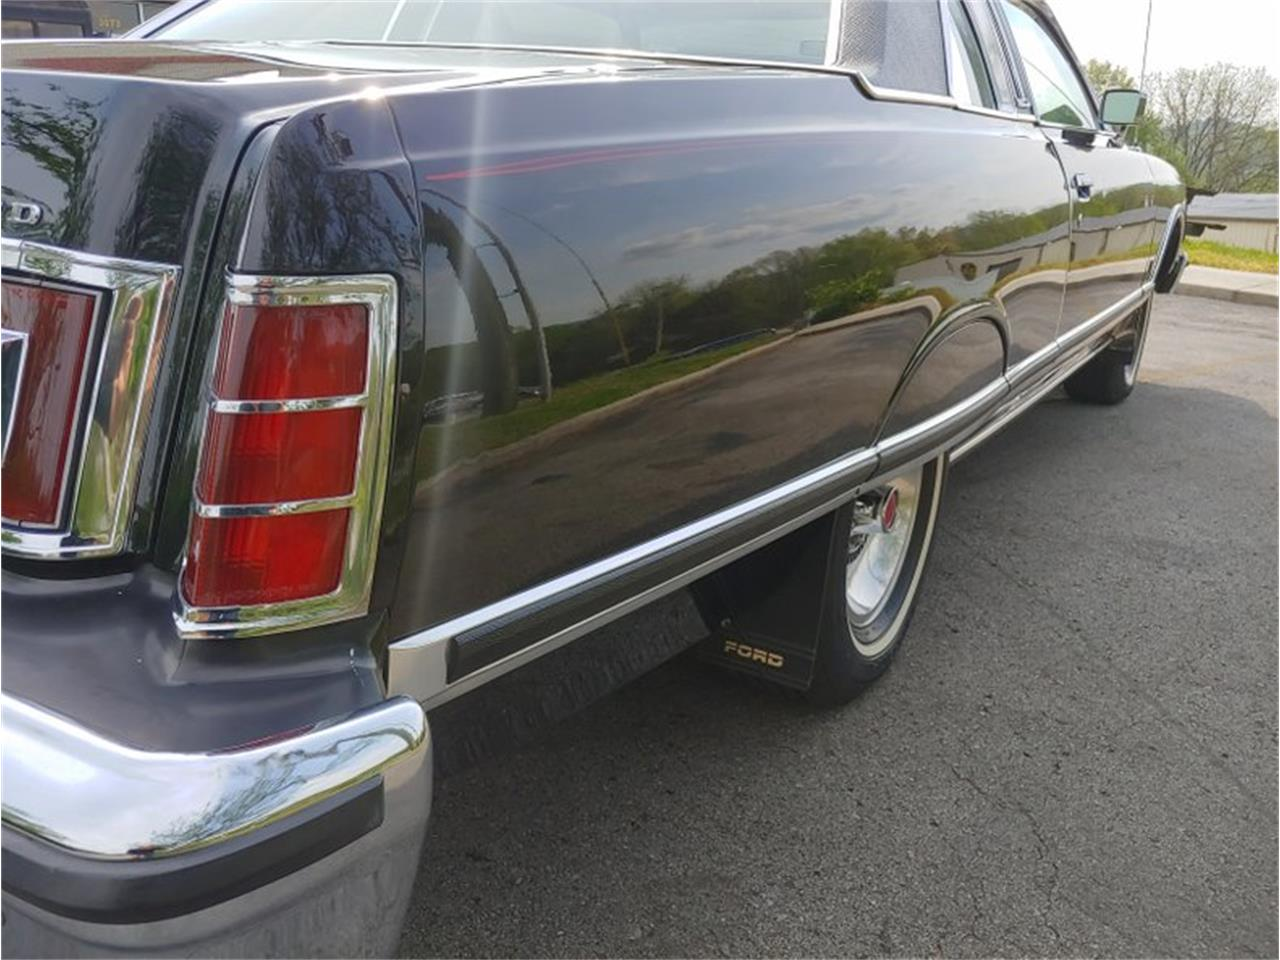 1978 Ford LTD for sale in Cookeville, TN – photo 73